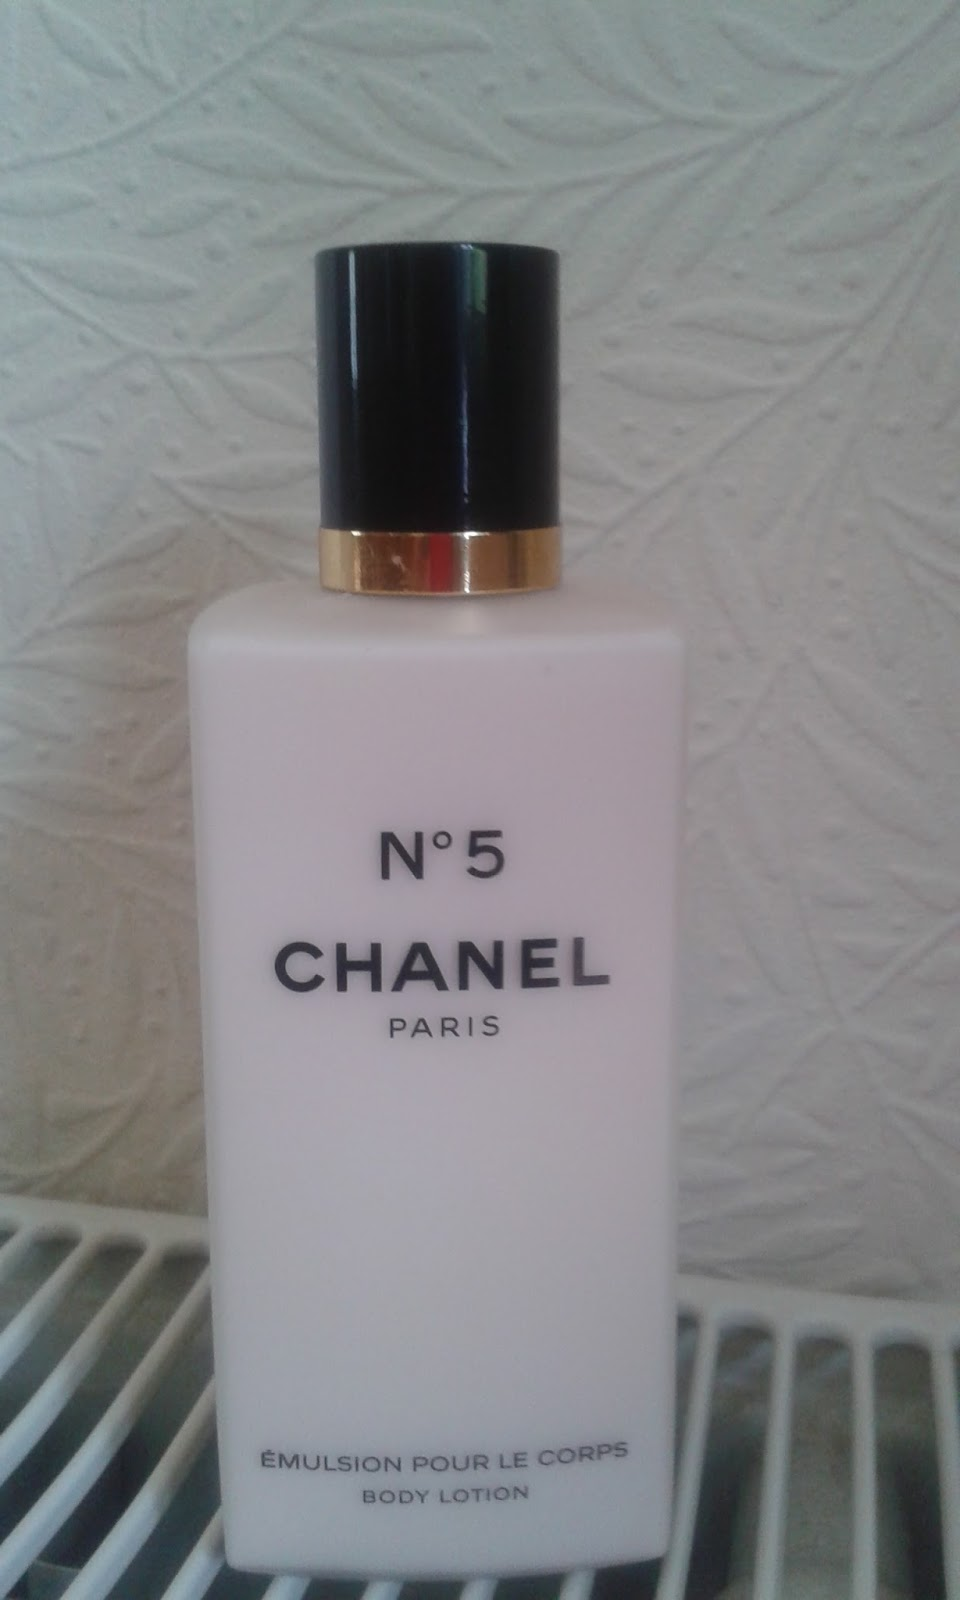 3a7c9867517 Chanel No.5 is a timeless fragrance and I was glad I got to keep the  bottle. £42 for a bottle is not cheap so you d expect a more sophisticated  packaging.